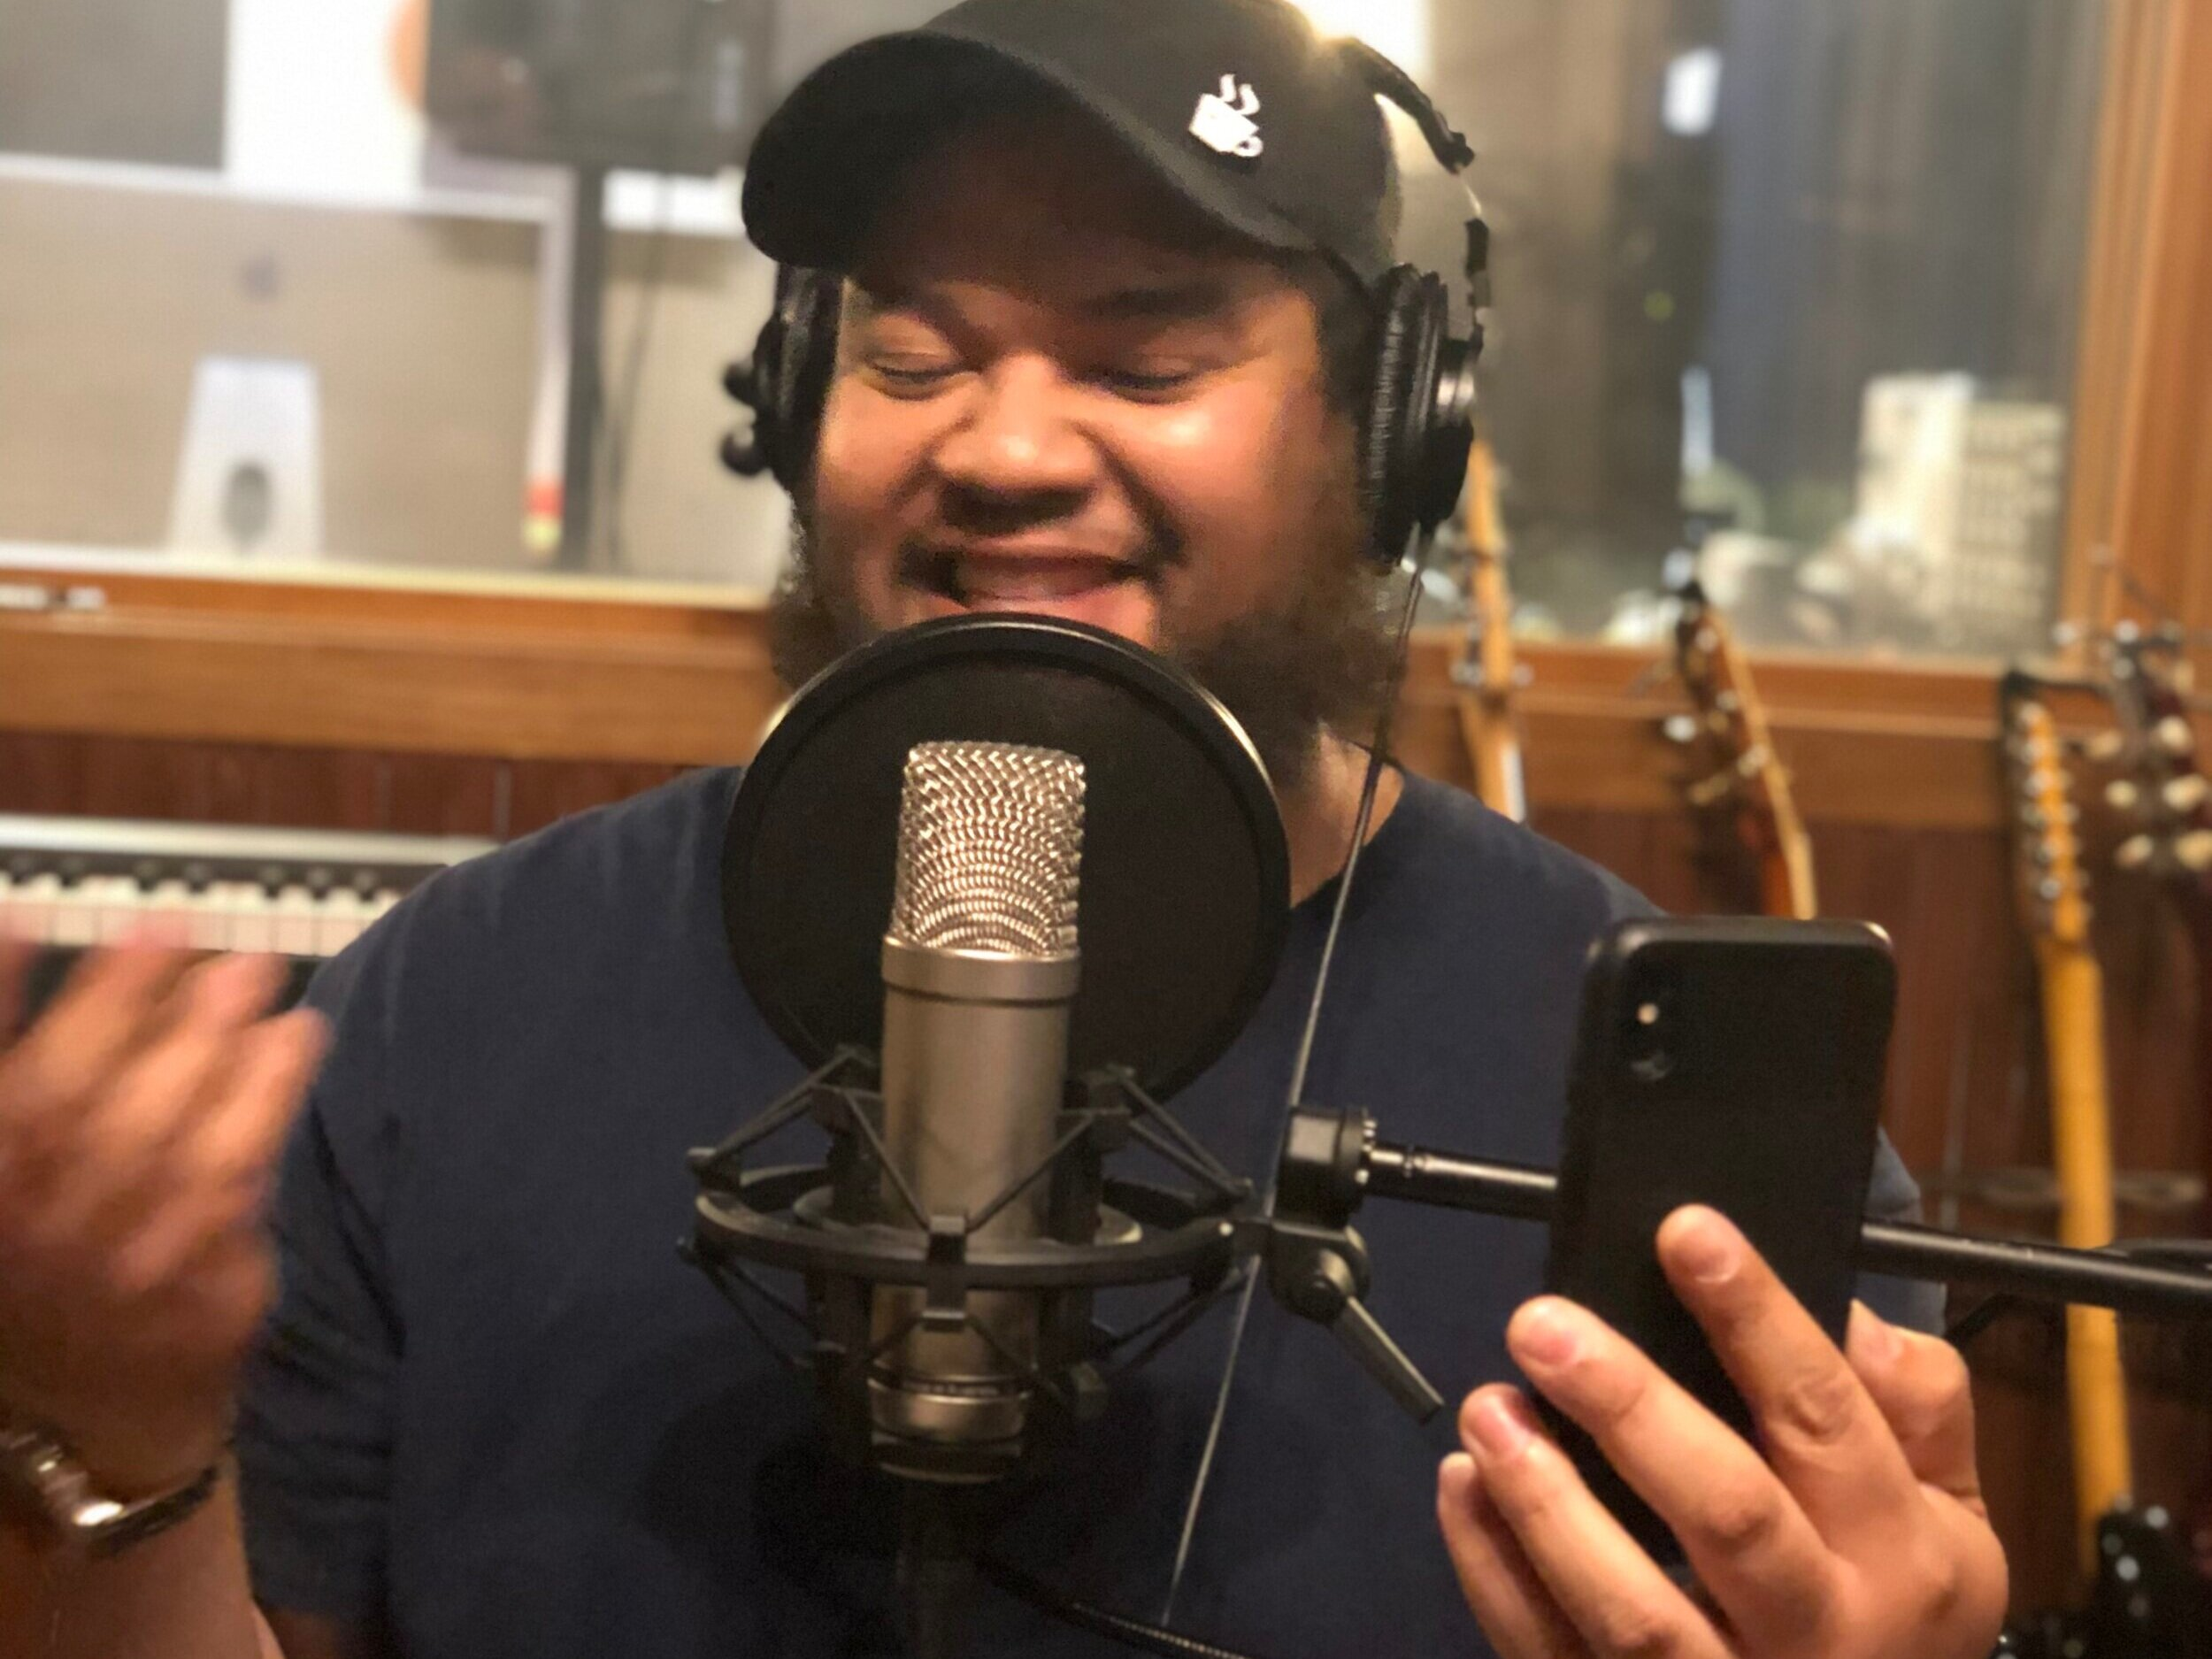 During the recording of the podcast, Wally pulls out his phone and starts to livestream on Instagram. You can hear my surprise in the episode as he starts to interview me.